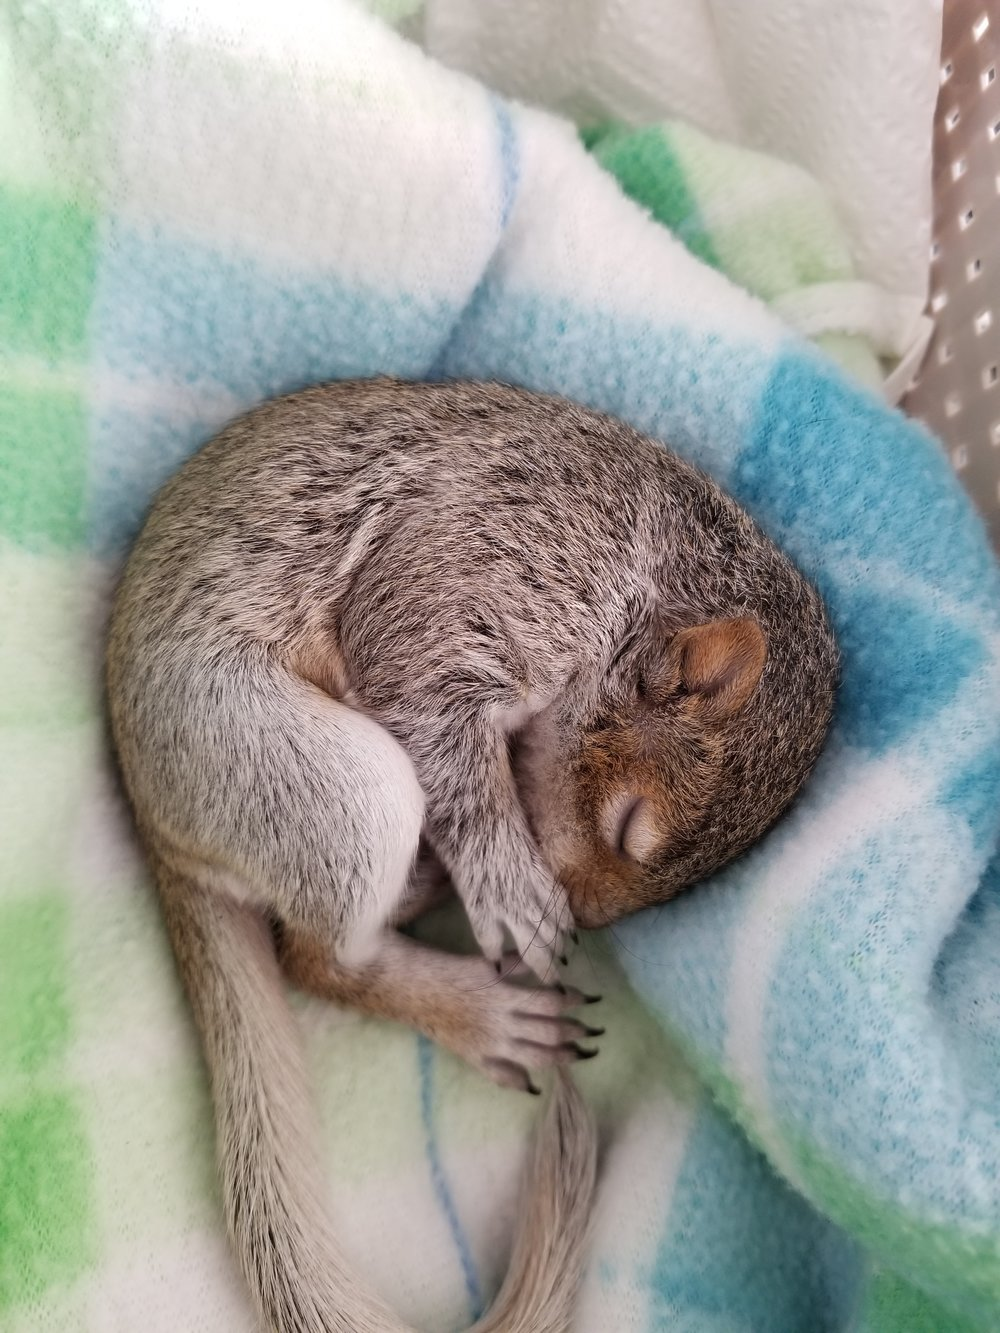 I found a baby squirrel -